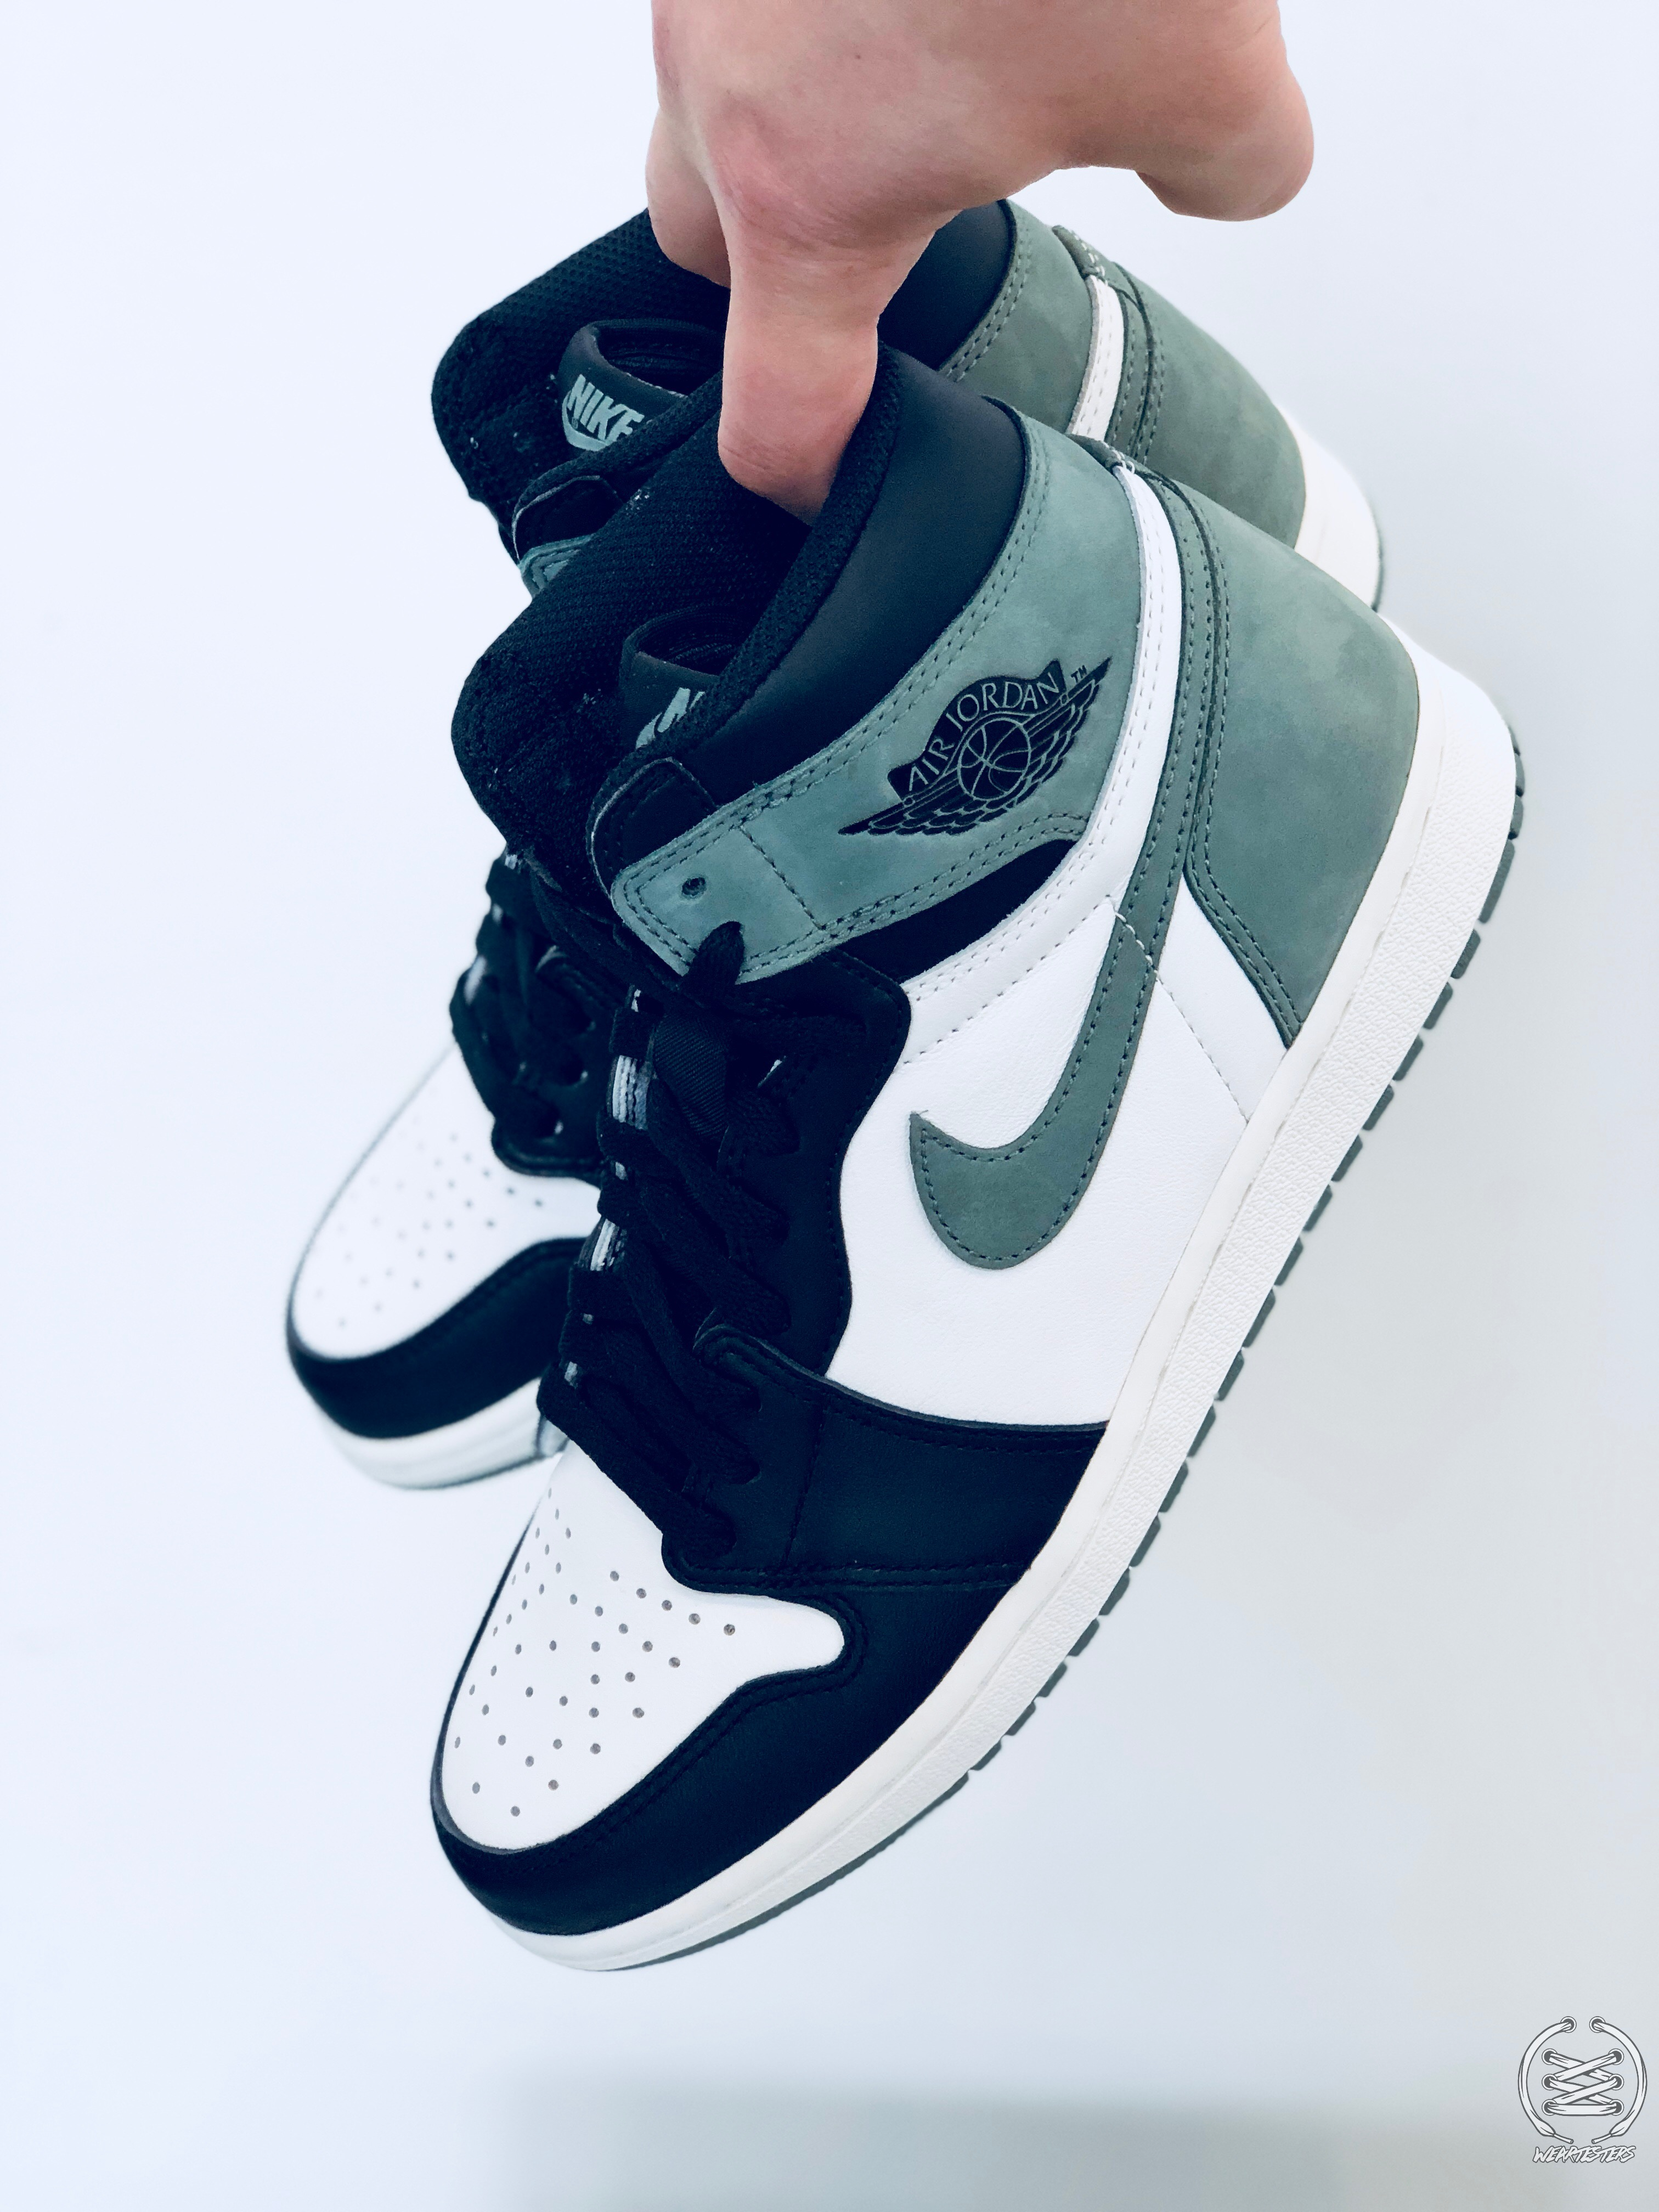 buy online e25d4 6c987 Only the Air Jordan 1 'Clay Green' and 'Blue Moon' to ...